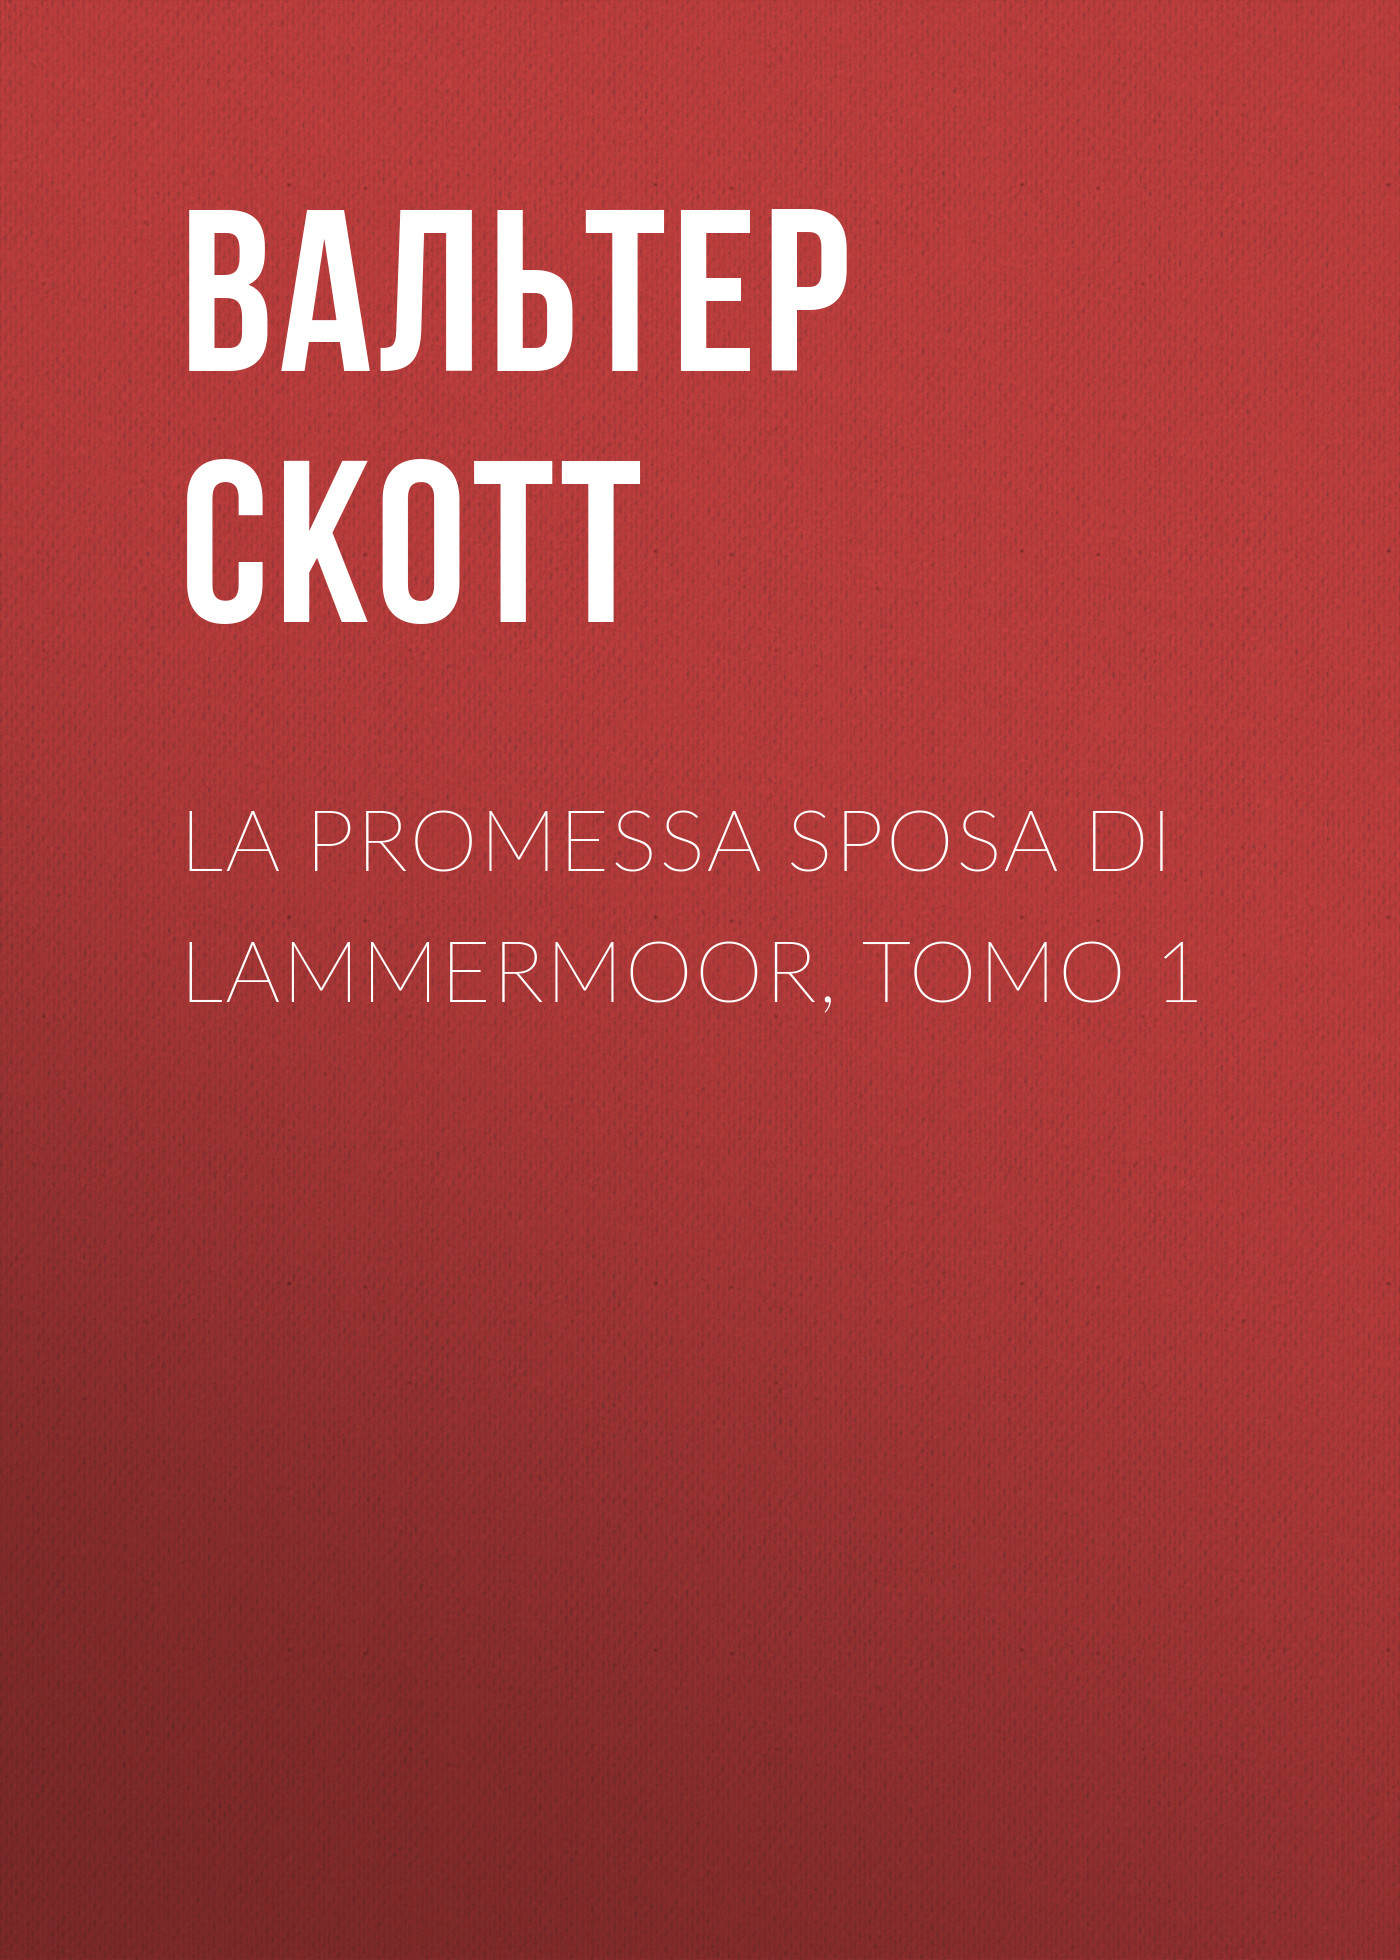 Вальтер Скотт La promessa sposa di Lammermoor, Tomo 1 вальтер скотт the bride of lammermoor